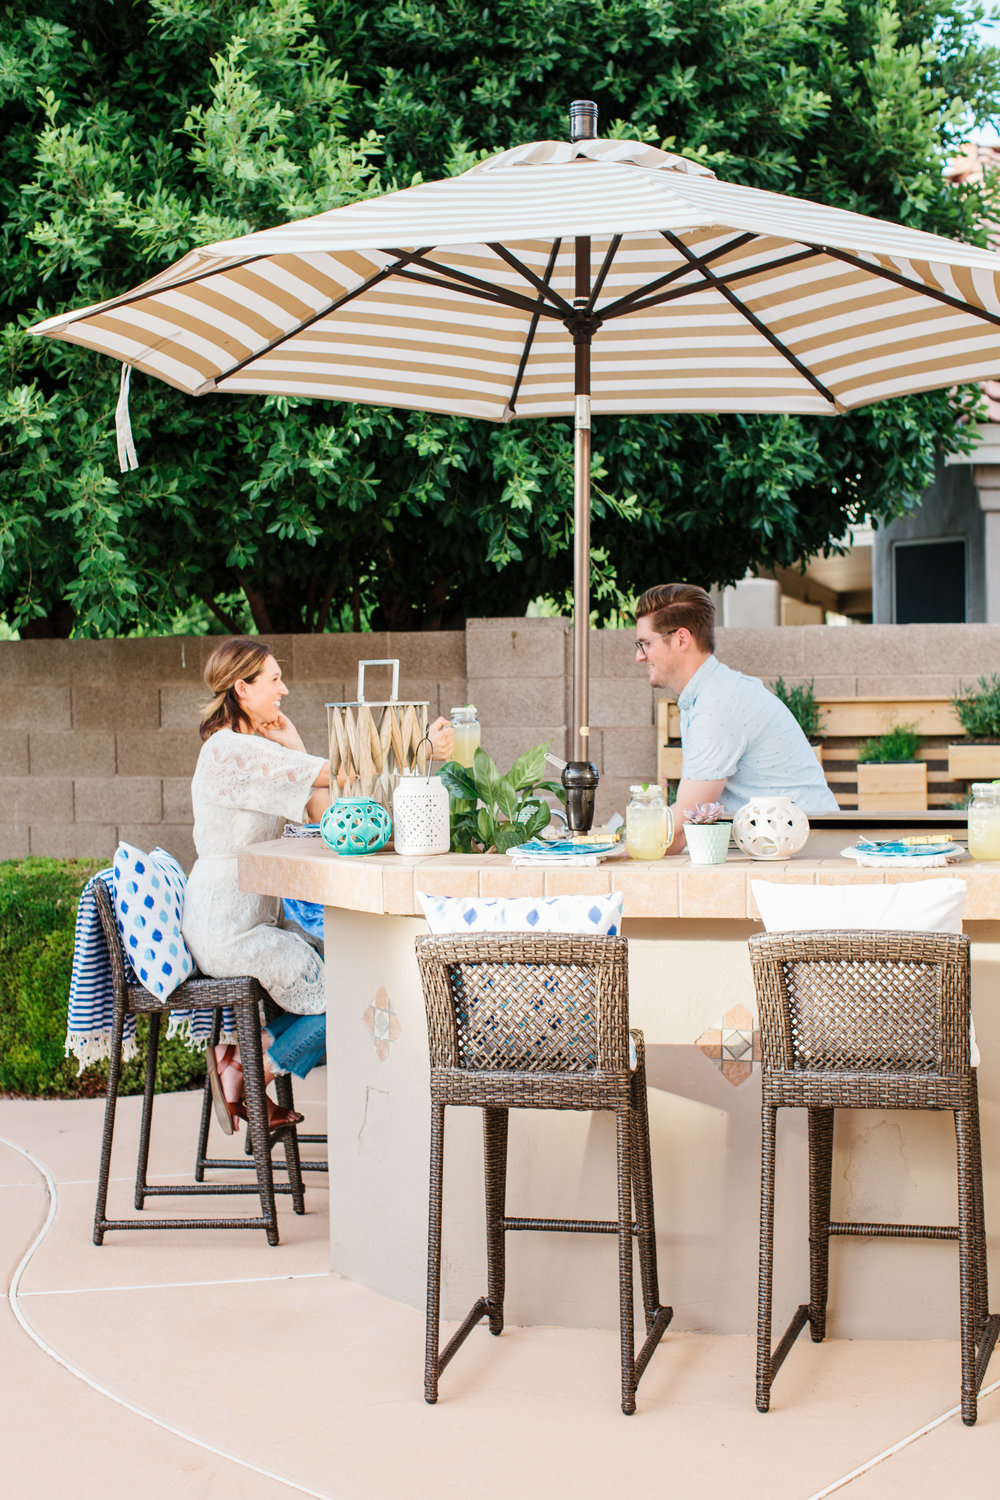 home depot family room reveal ave styles may 2 2017 lifestyle food collaboration outdoor entertaining outdoor living home decor outdoor decor outdoor furniture bbq outdoor bar grill